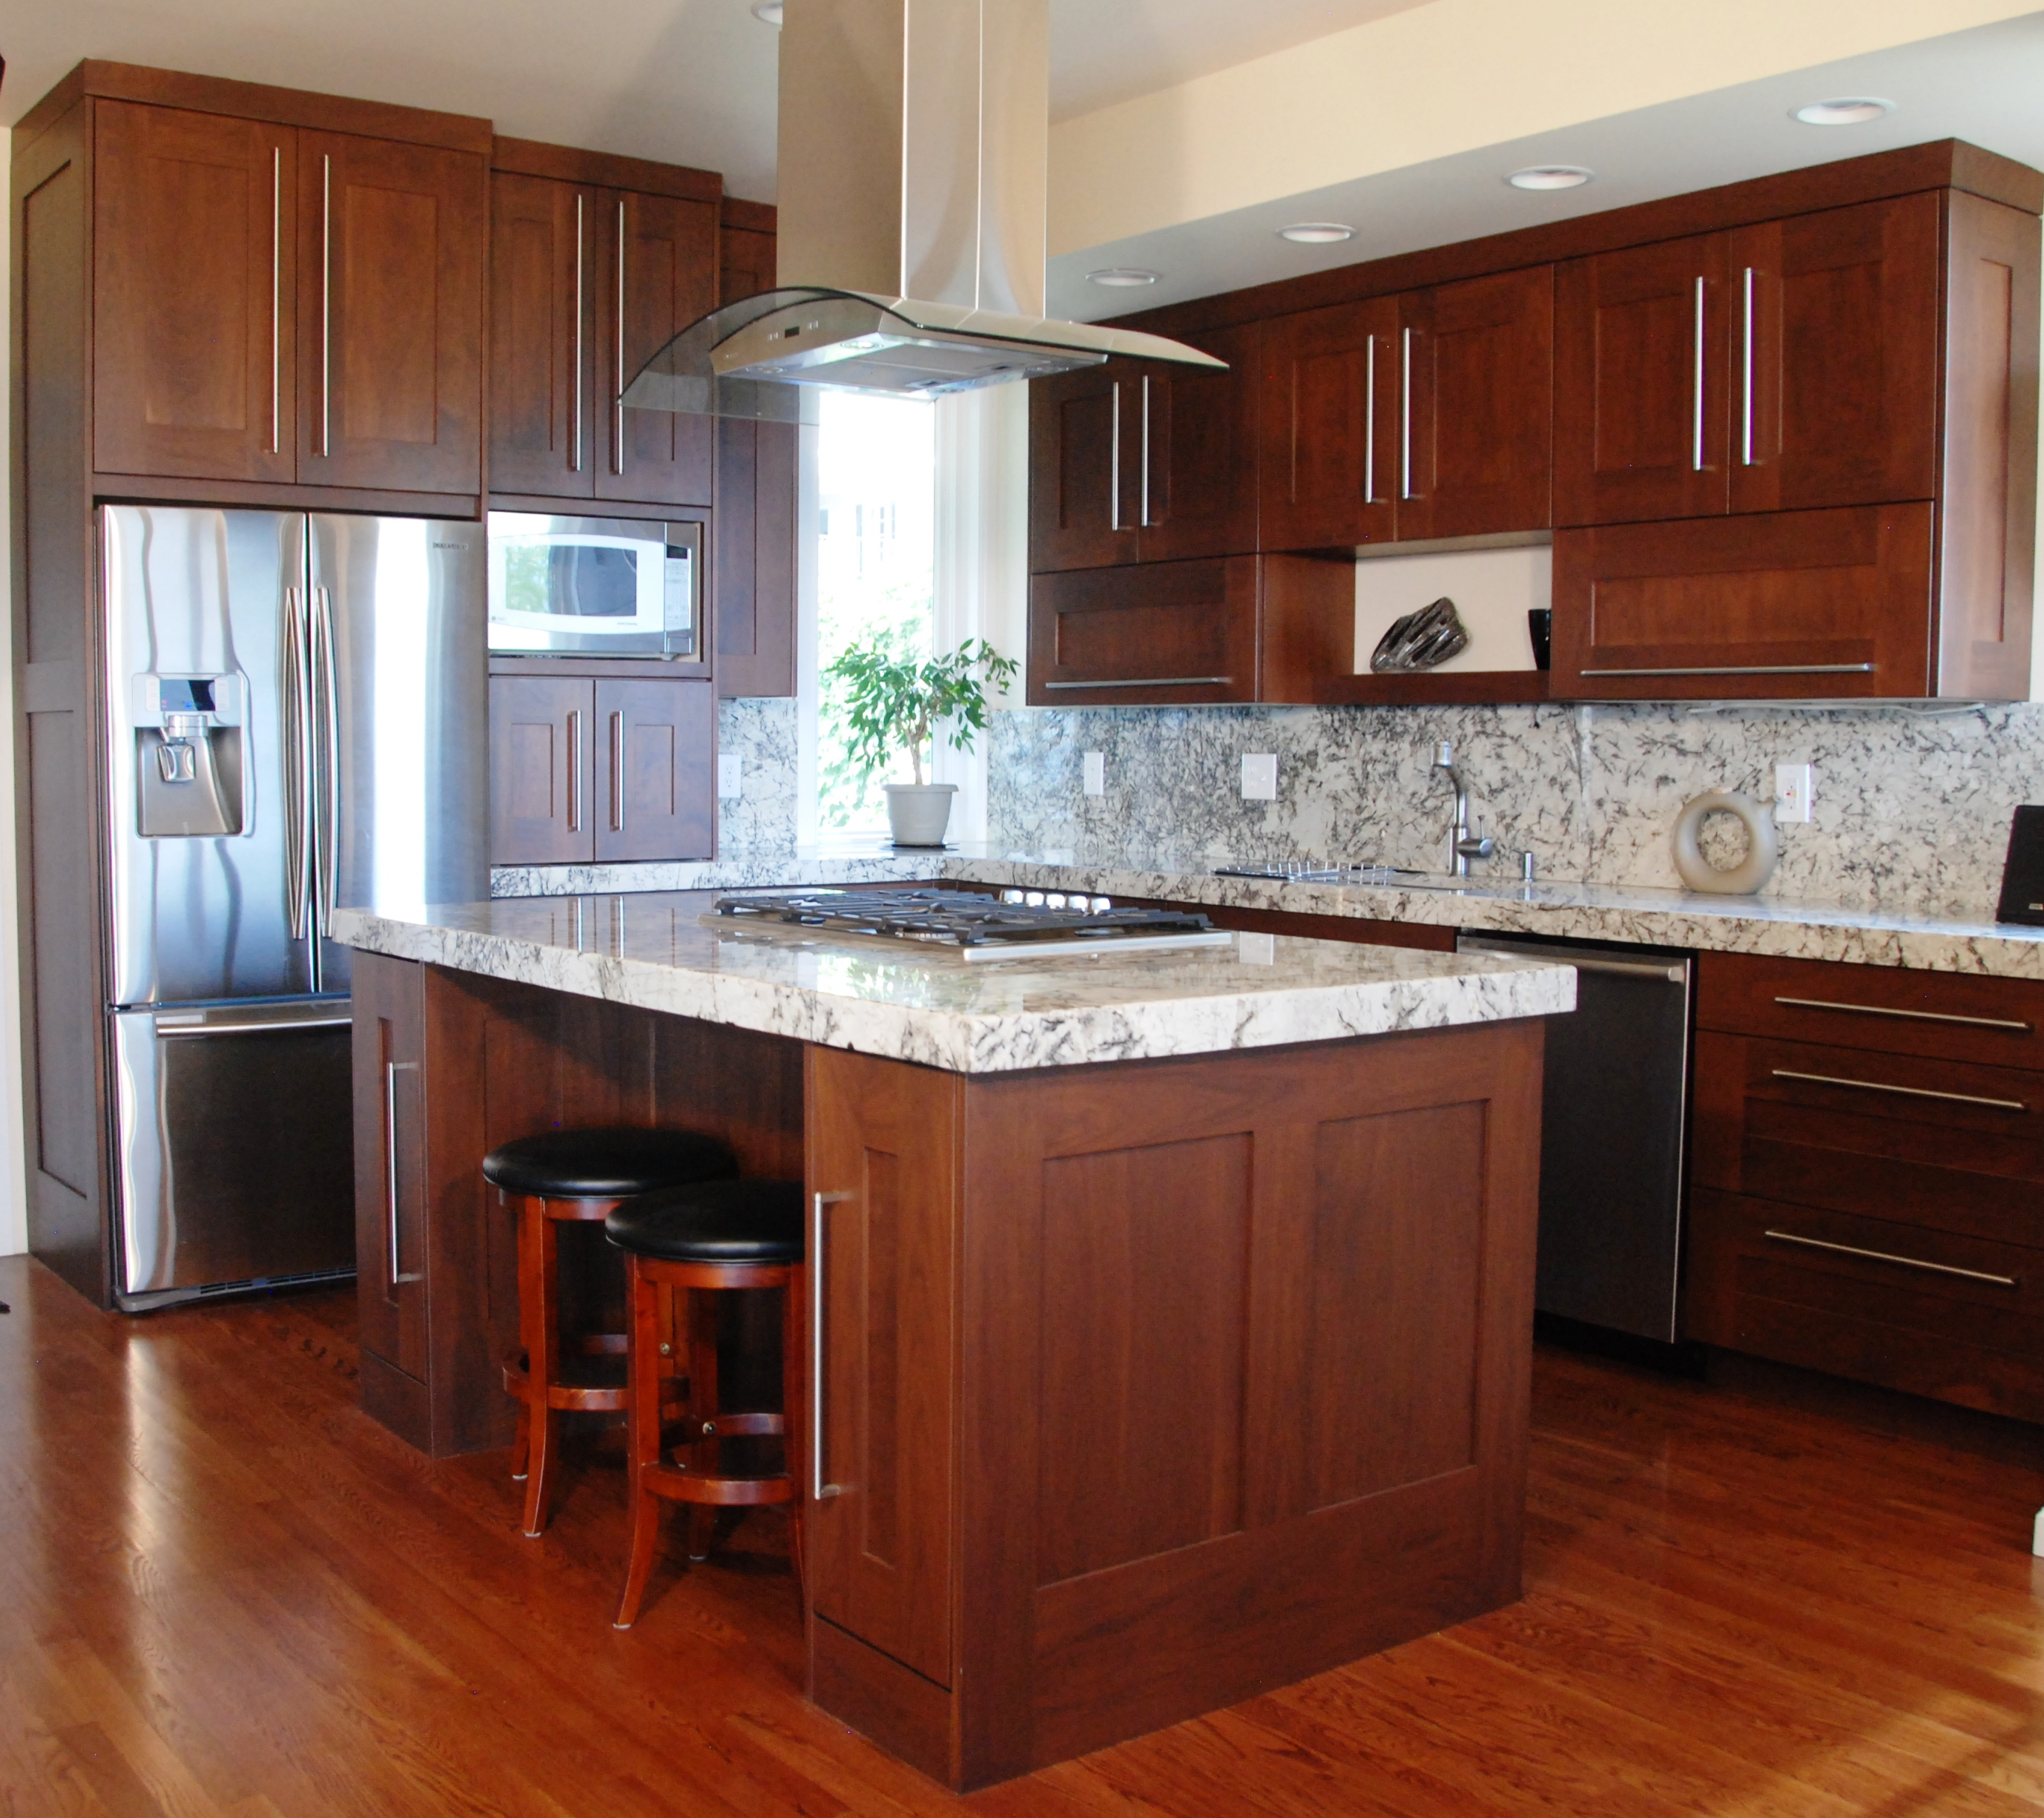 Contemporary Kitchen Cabinetry Pictures | Steve's Cabinetry Blog